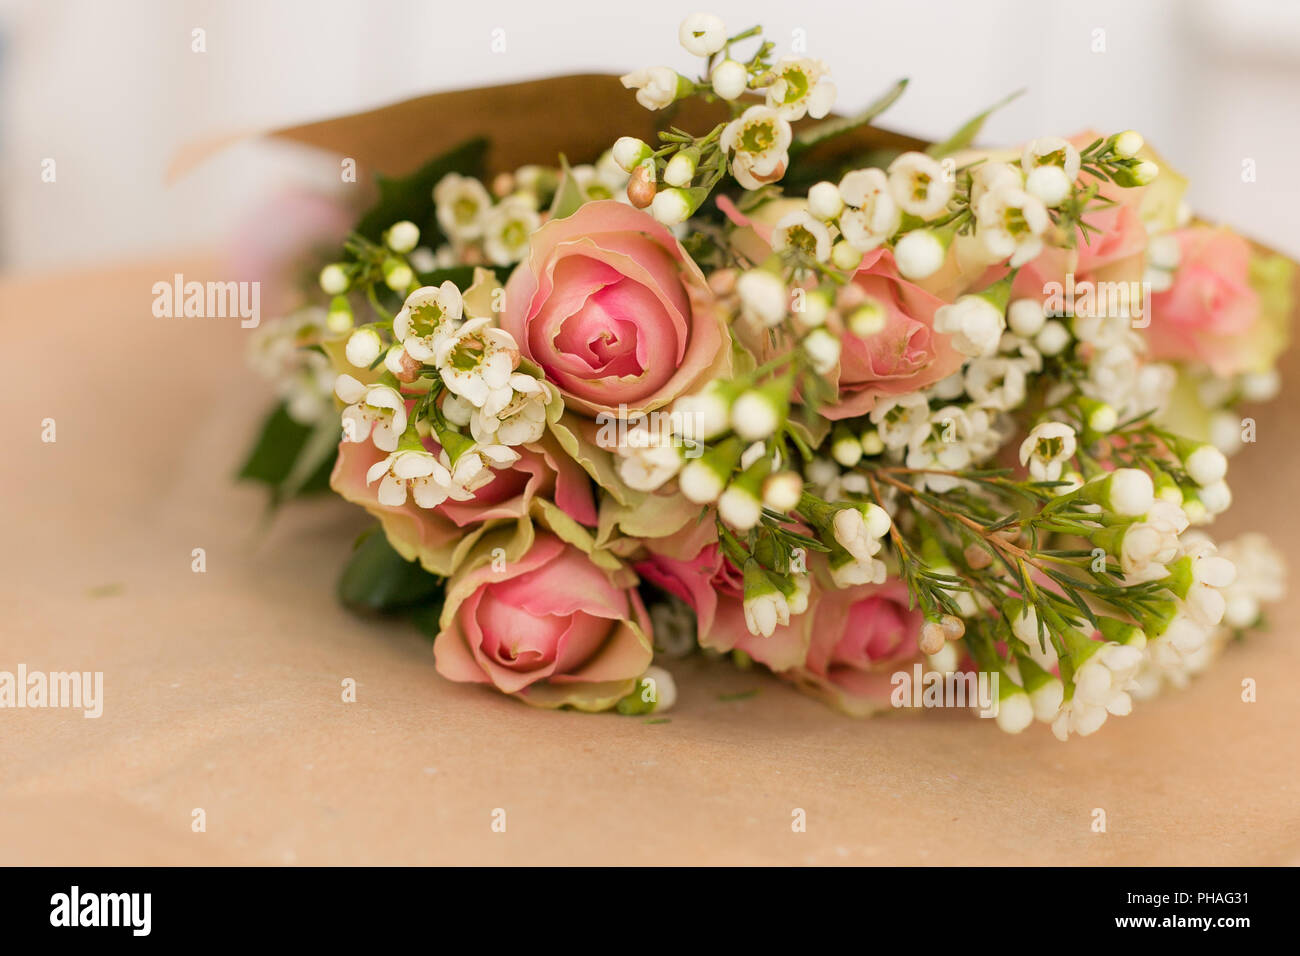 Beautiful bouquet of pink roses and daisies in the craft paper beautiful bouquet of pink roses and daisies in the craft paper flowers present for birthday stylish flower bunch ready for wrapping izmirmasajfo